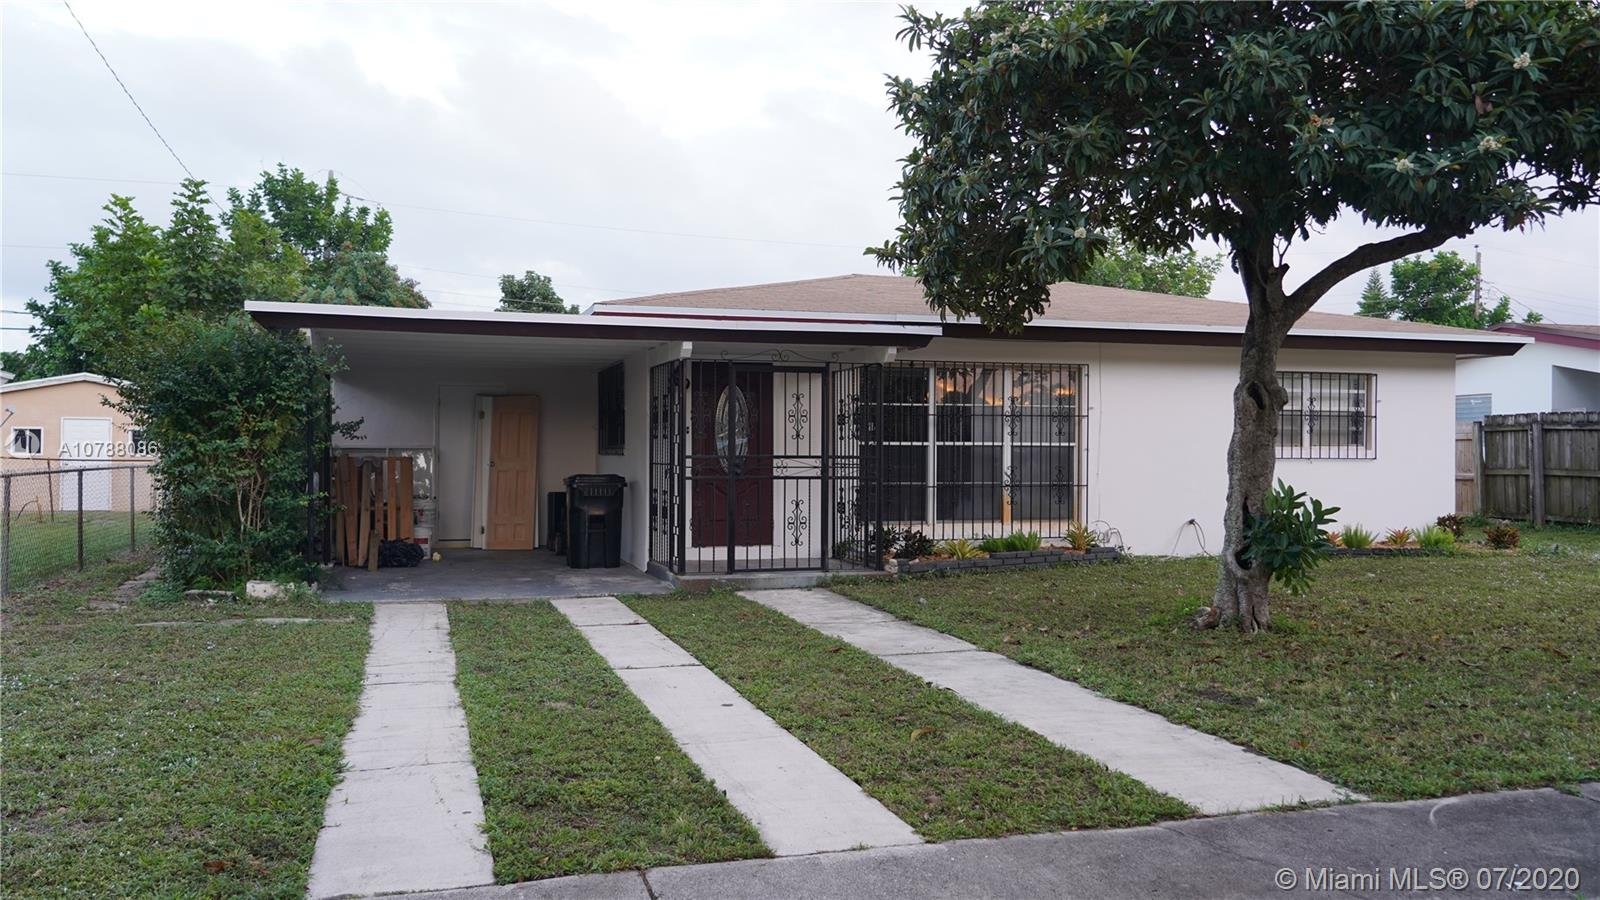 Charming 3/2 perfect starter home or ideal for investors. Quiet neighborhood.